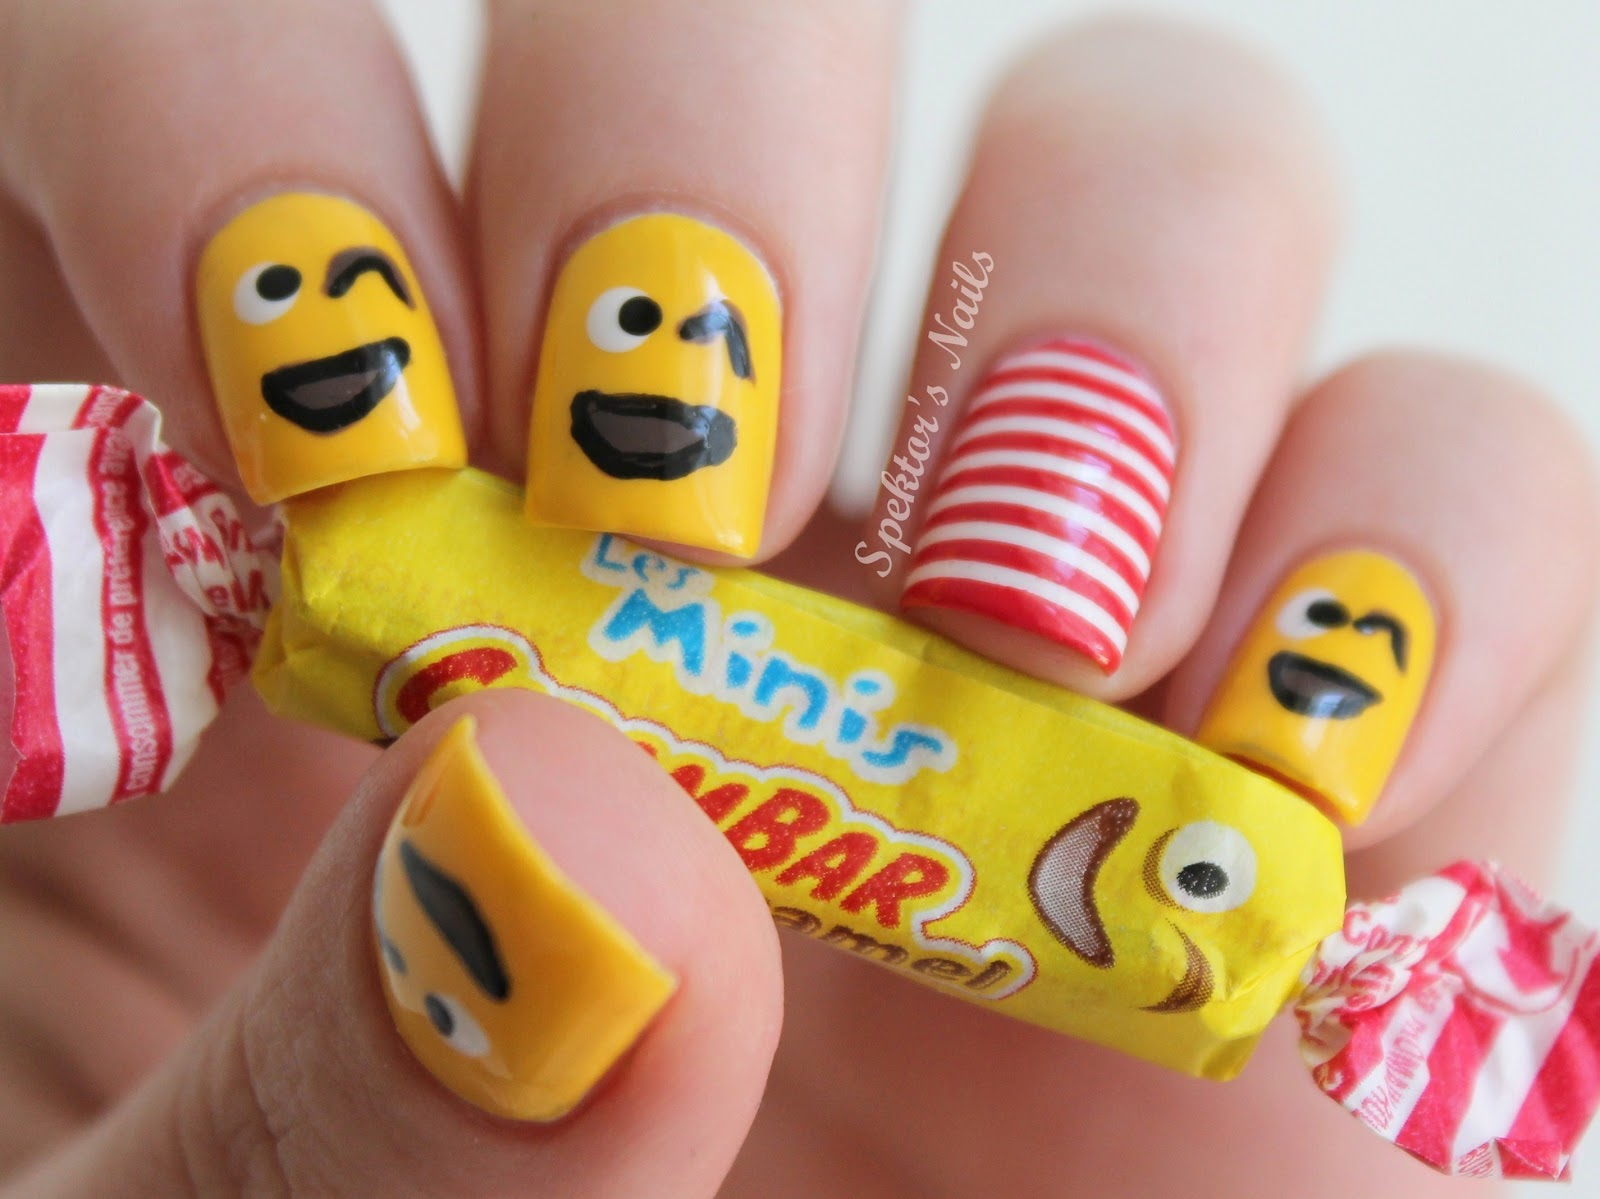 [Jeu] Association d'images - Page 5 Carambar_Nails_B